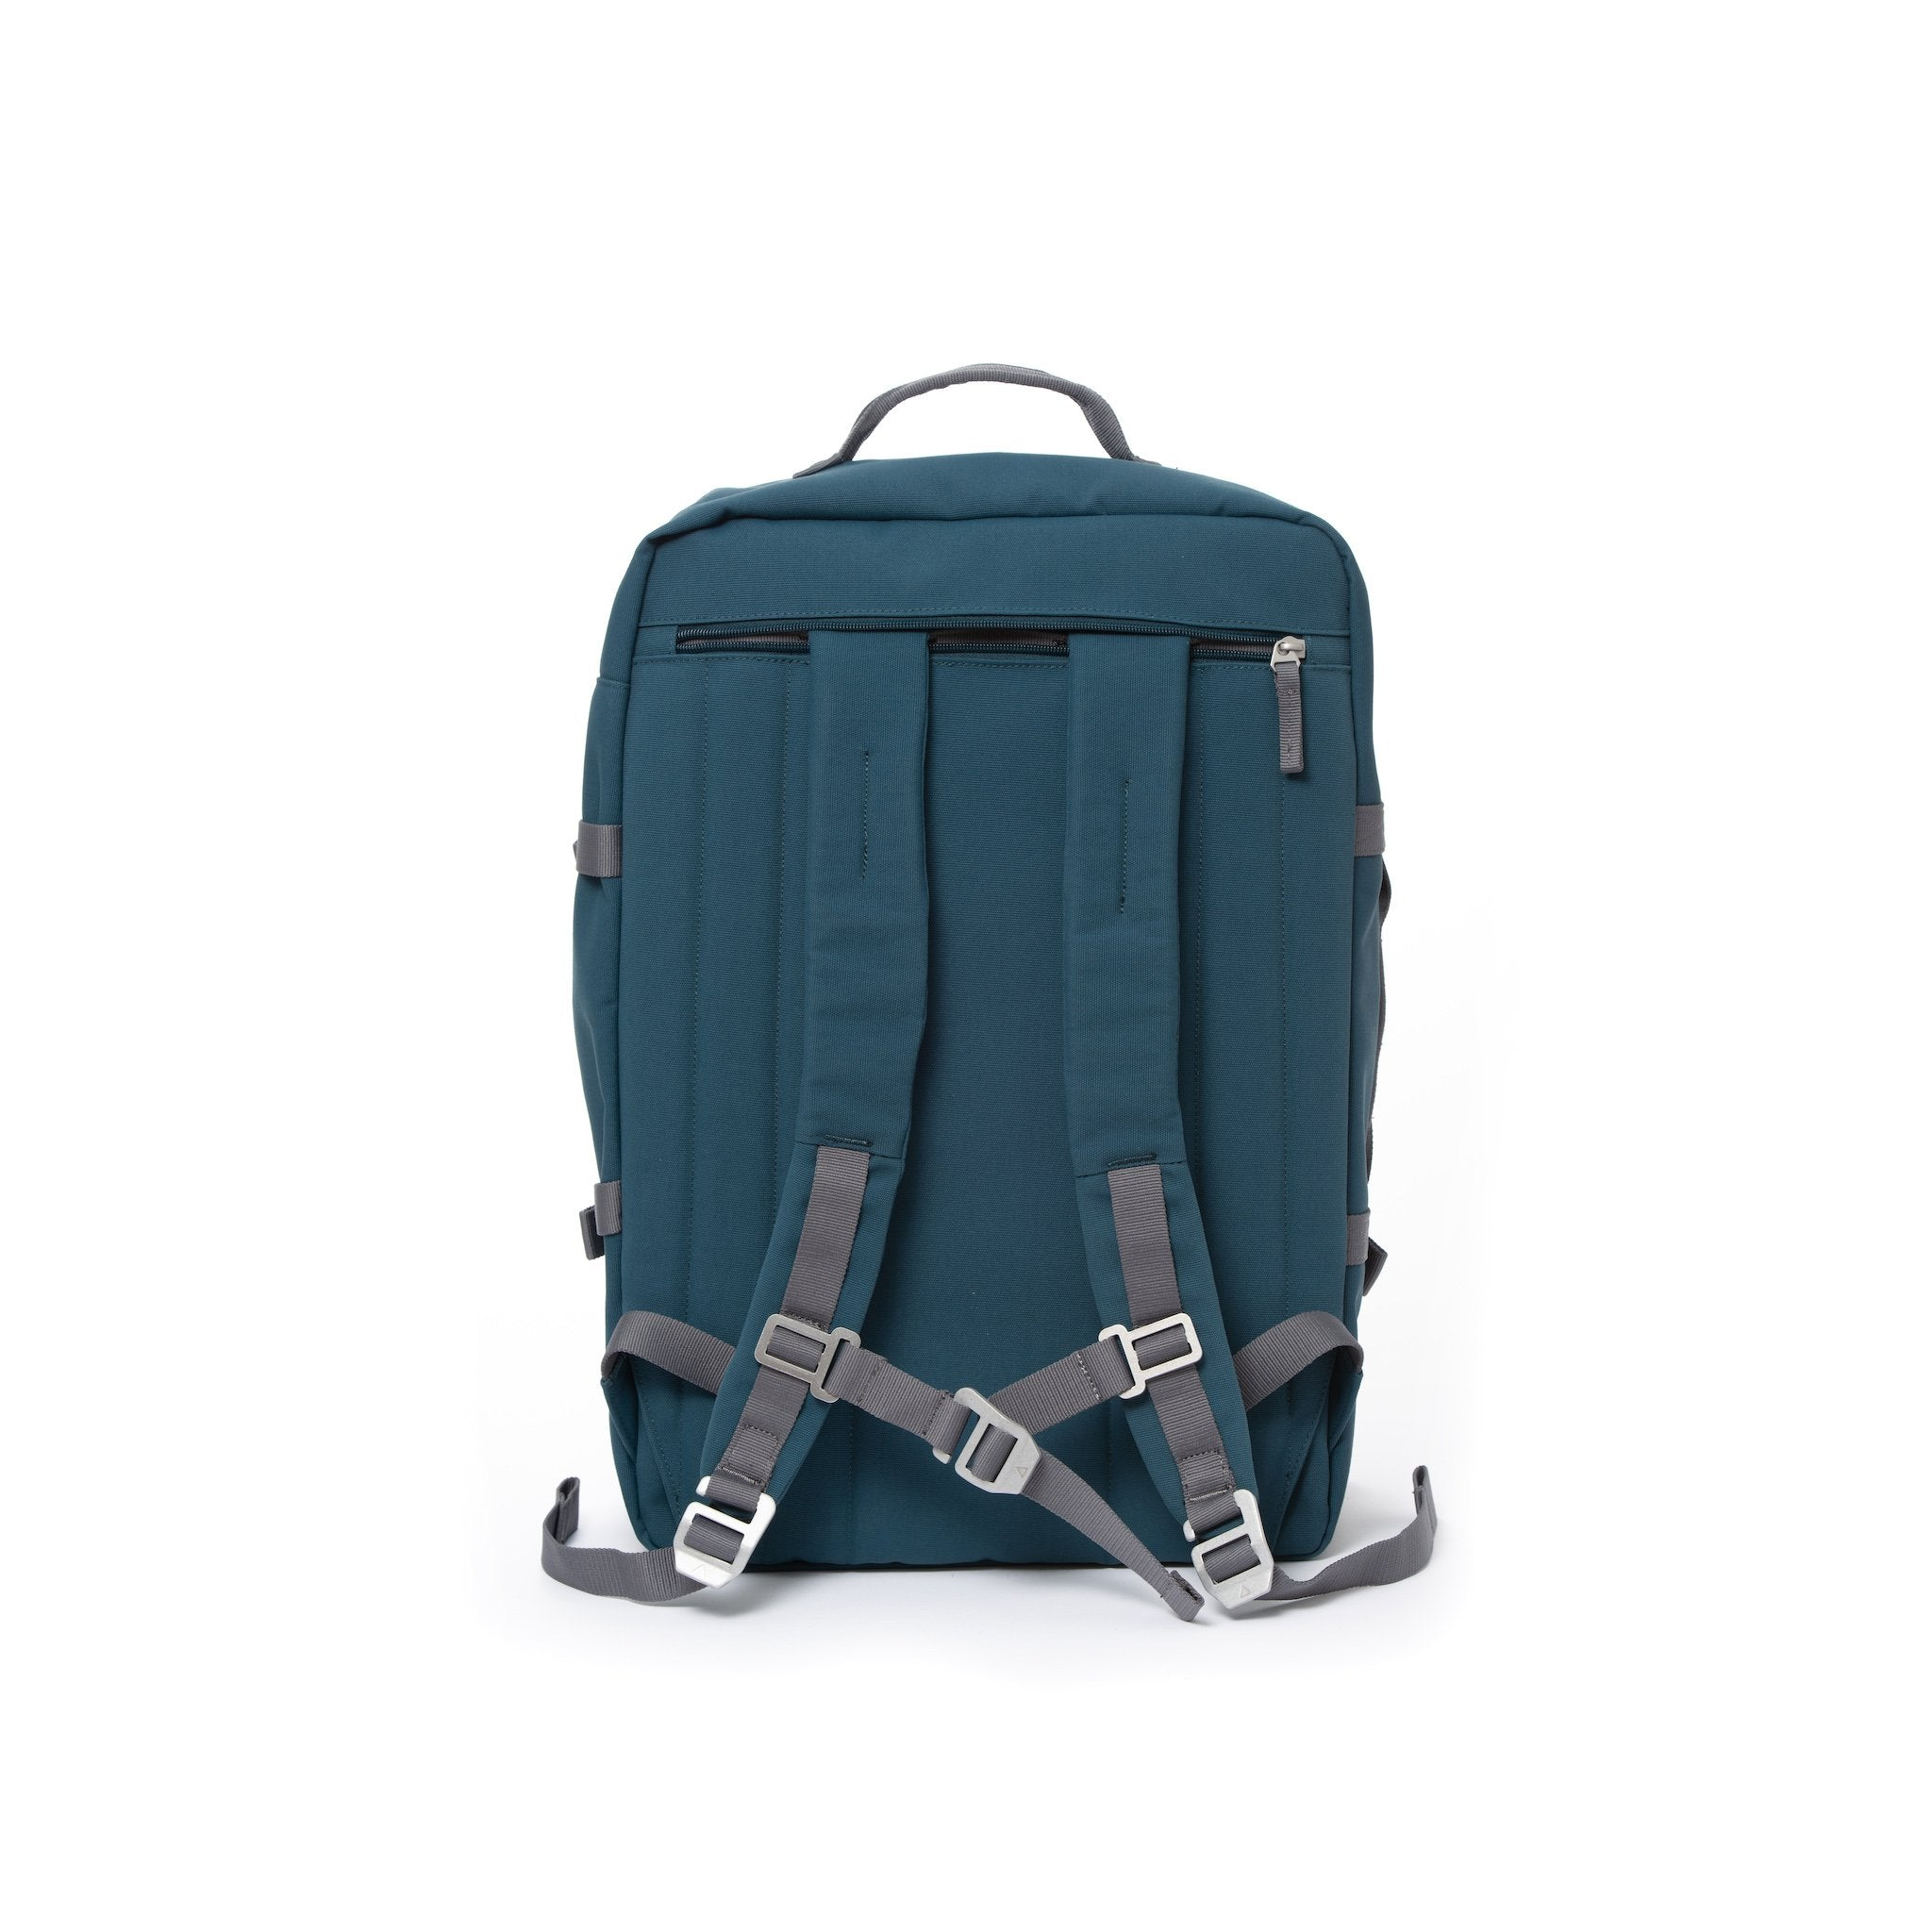 Blue travel backpack with padded shoulder straps.